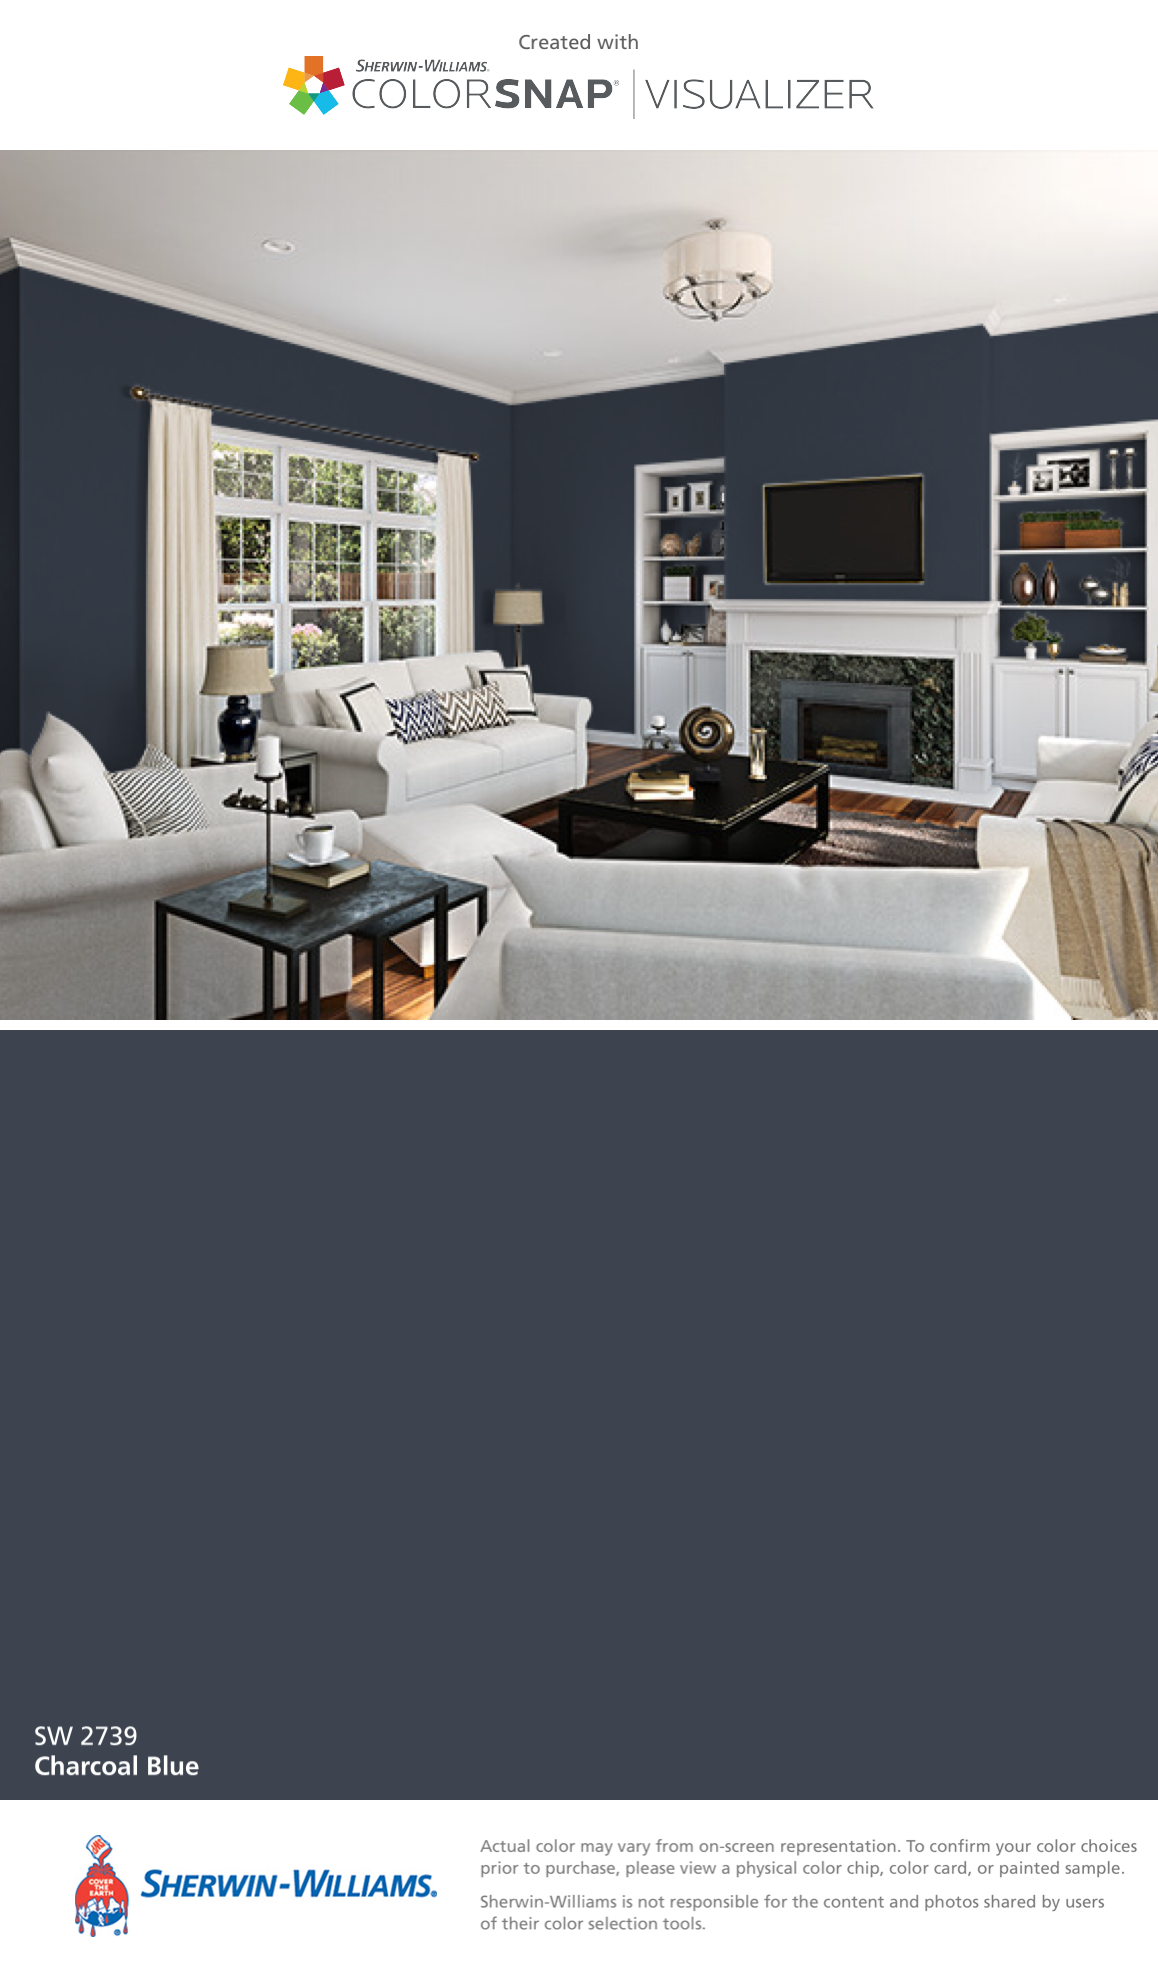 I found this color with ColorSnap® Visualizer for iPhone by  Sherwin-Williams: Charcoal Blue (SW 2739).